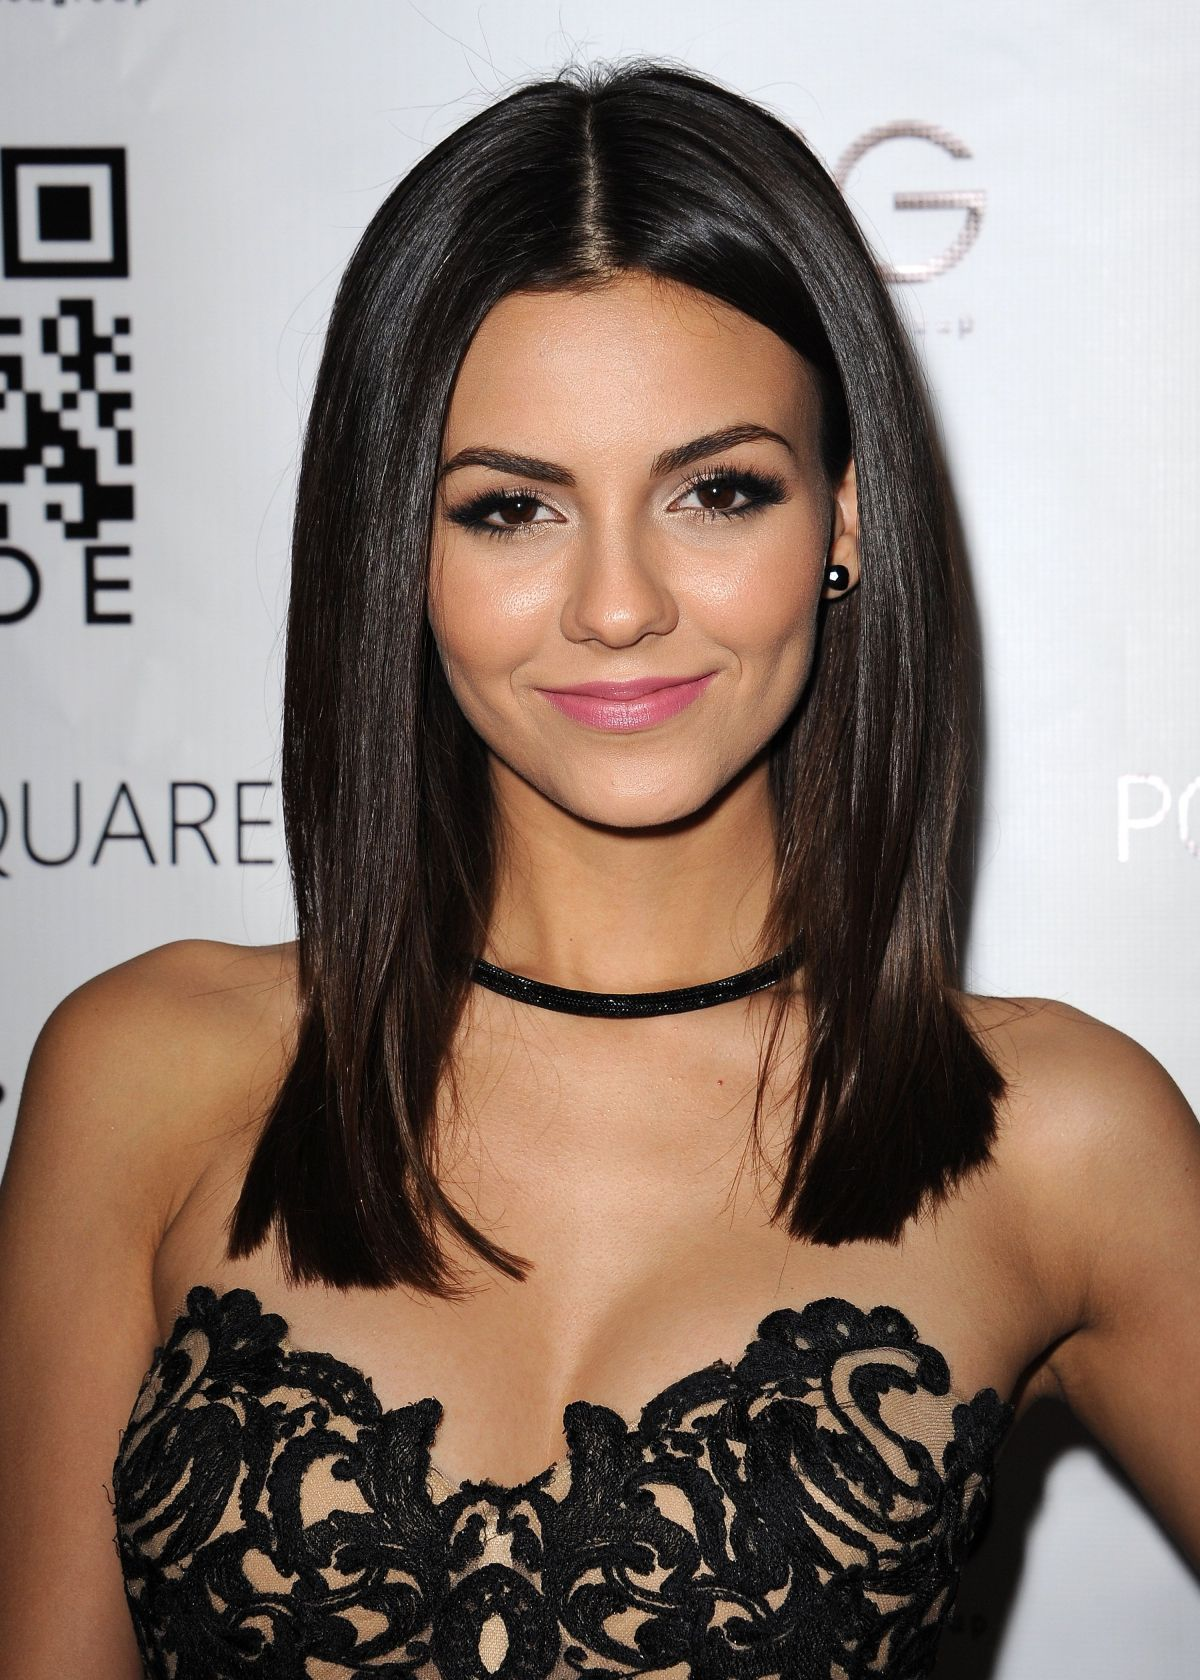 Victoria Justice naked (71 photos) Fappening, Instagram, see through